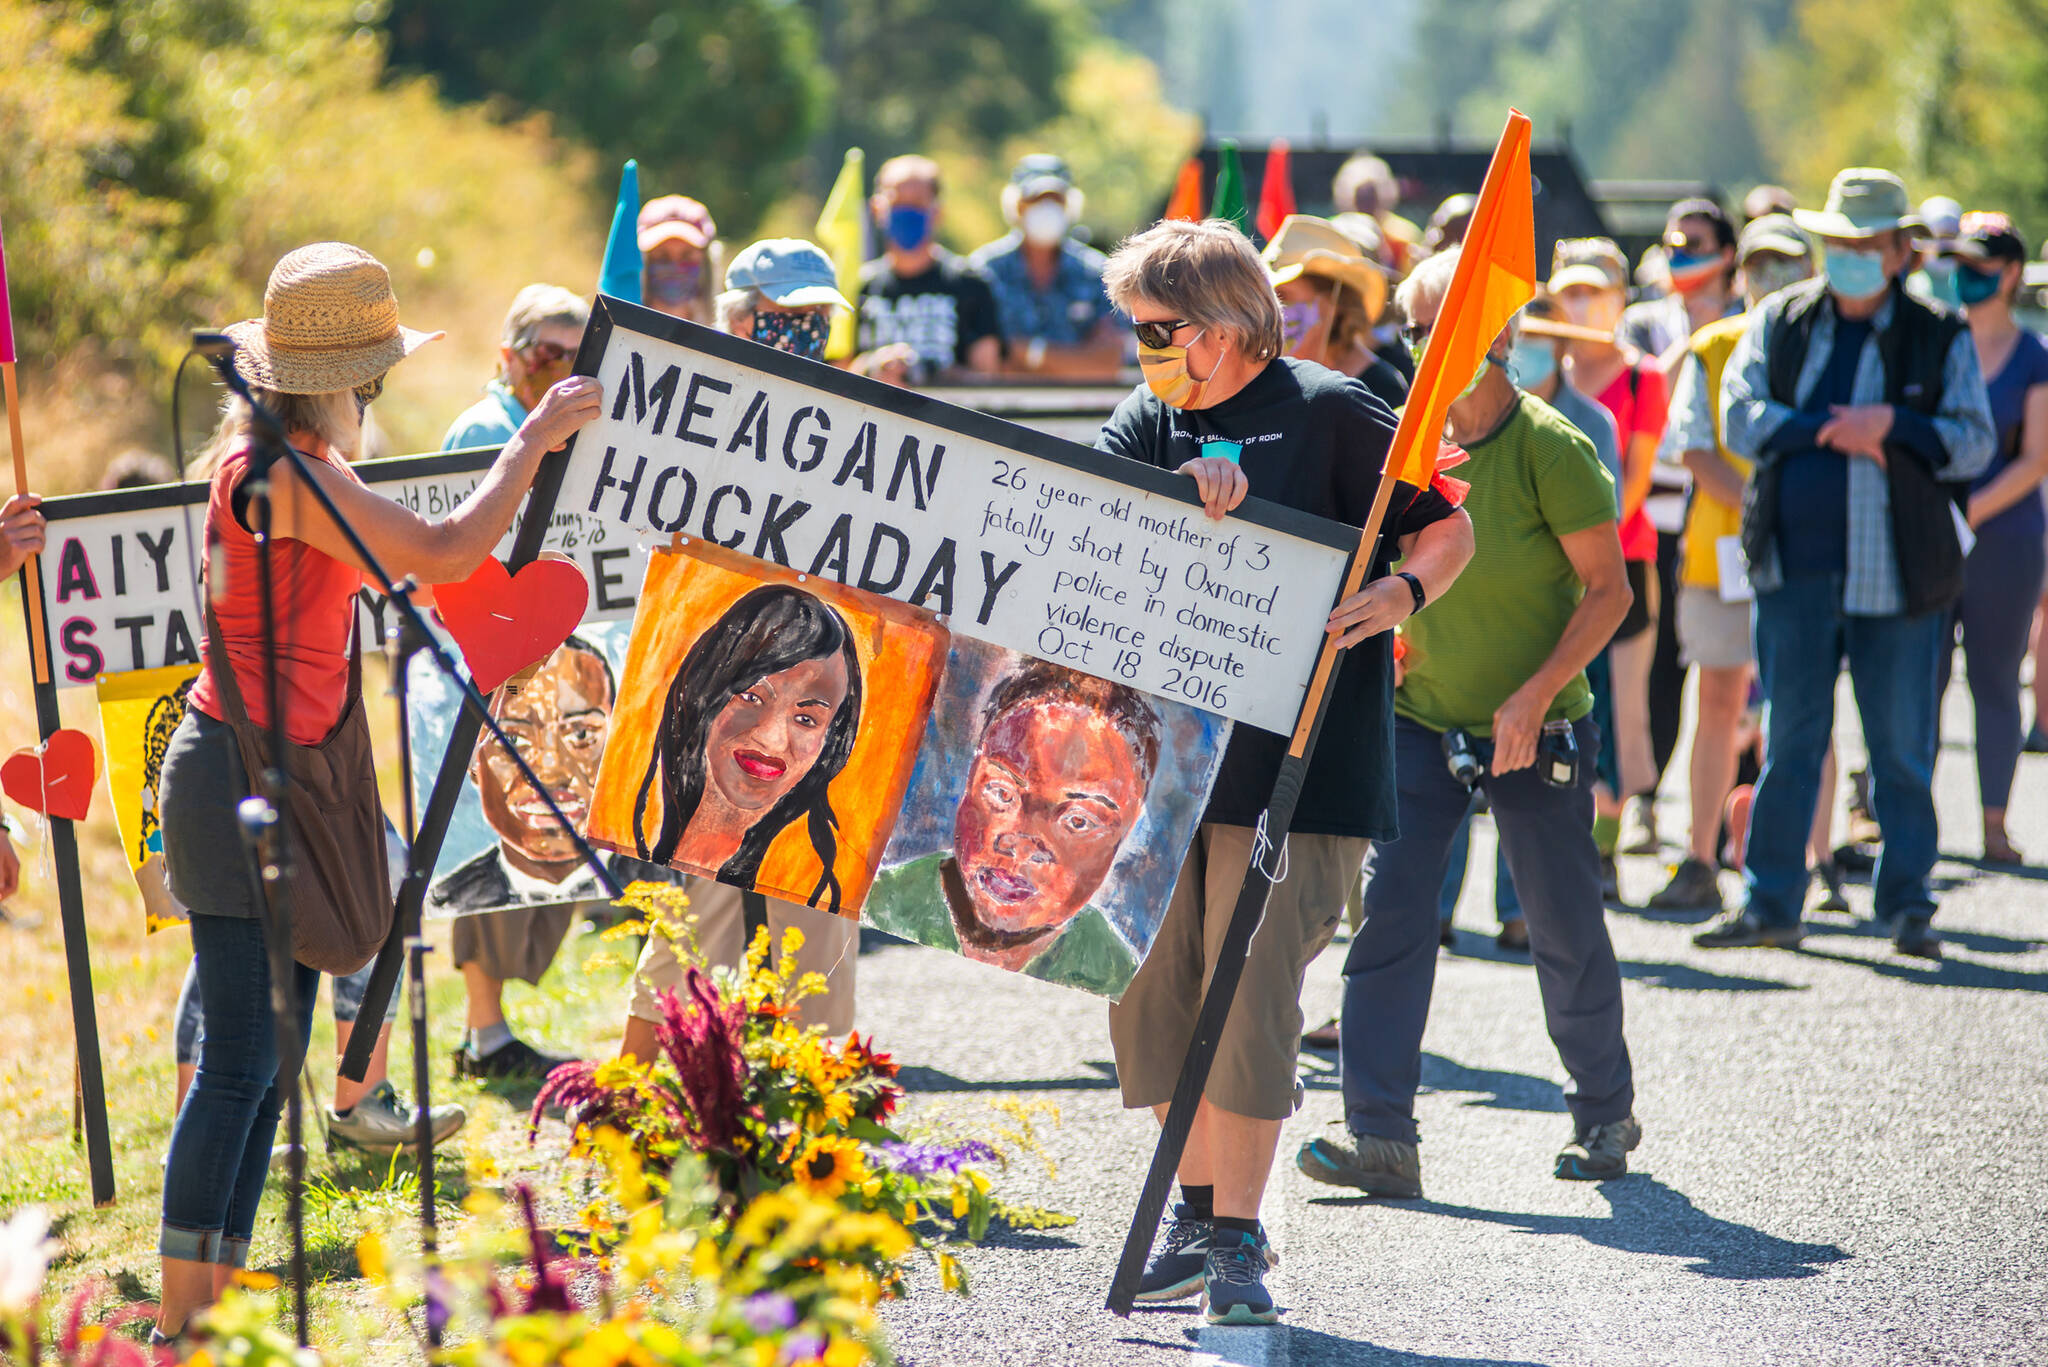 Lopezians gathered to honor Black lives lost as they respectfully removed memorial signs along the side of Fisherman Bay Road on Sept. 6, 2020. (Robert S. Harrison/contributed photo)